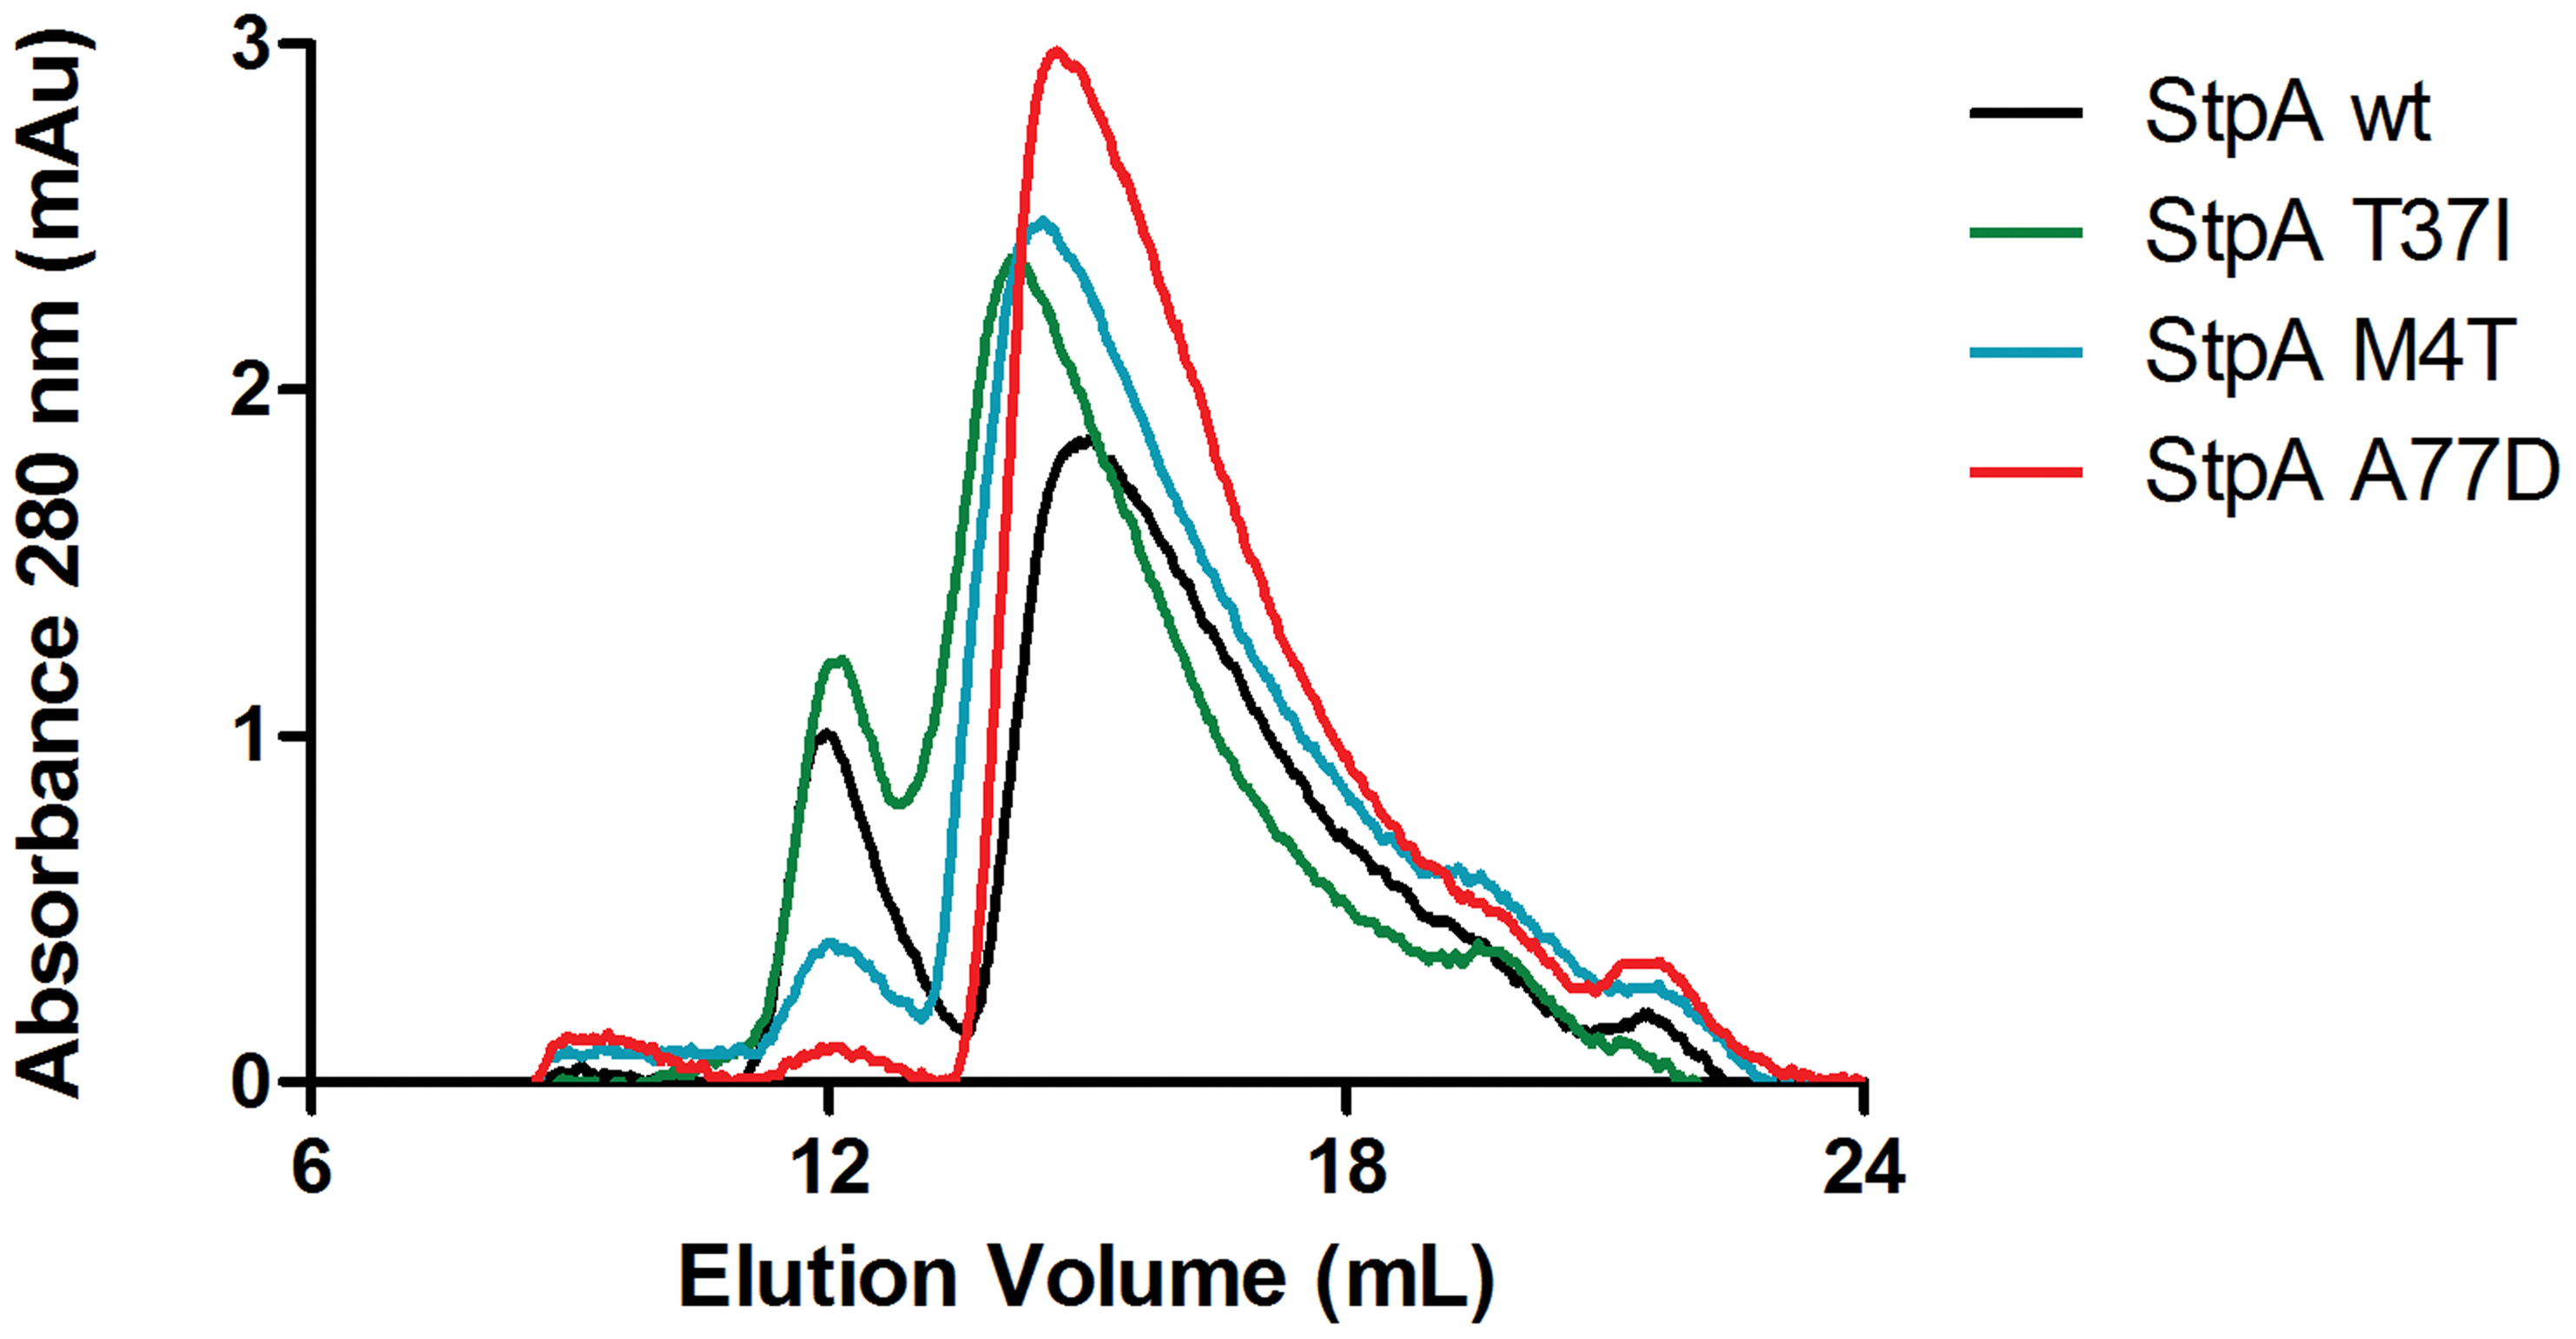 Analytical gel filtration of StpA and the StpA<sub>M4T</sub>, StpA<sub>A77D</sub>, and StpA<sub>T37I</sub> variants.